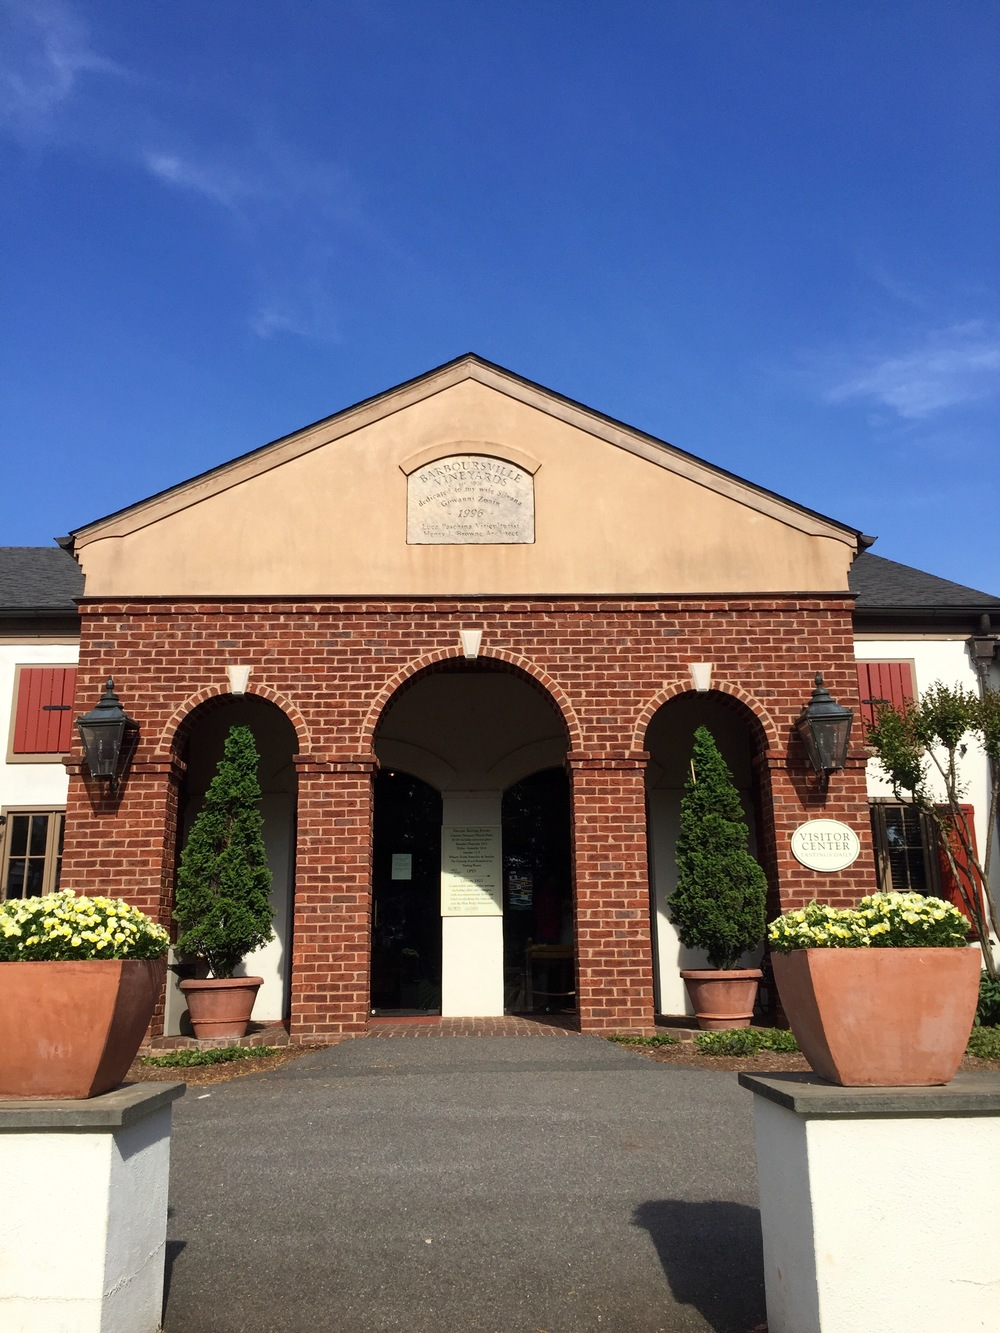 Tasting room of Barboursville Vineyards